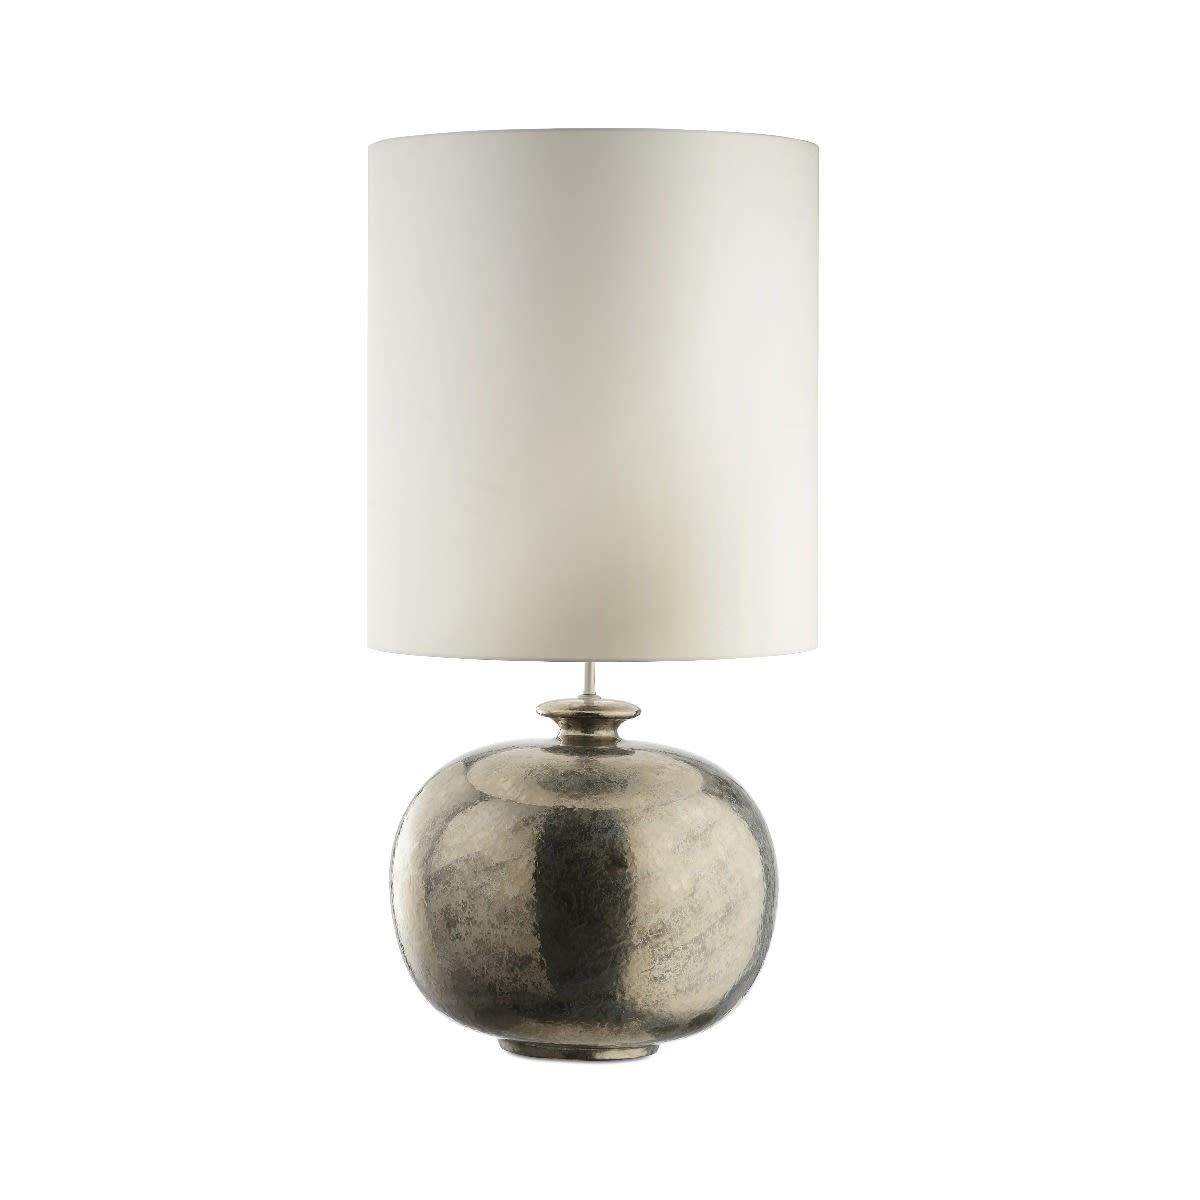 Luxury handcrafted table lamps the culture of art eclisse ceramic table lamp shad aloadofball Image collections